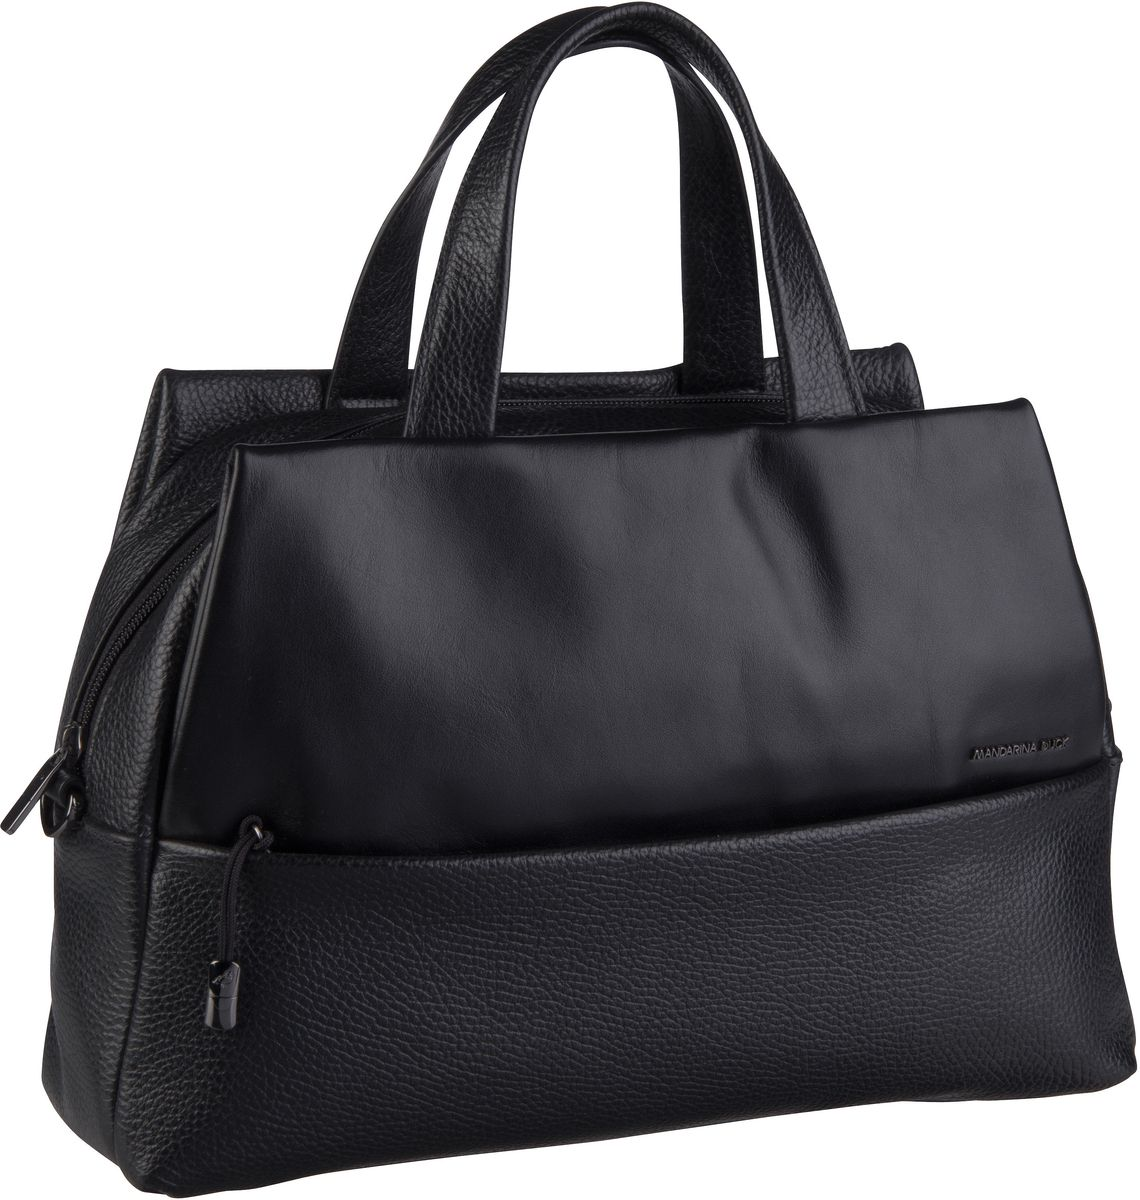 Handtasche Athena Boston Bag UPT01 Black